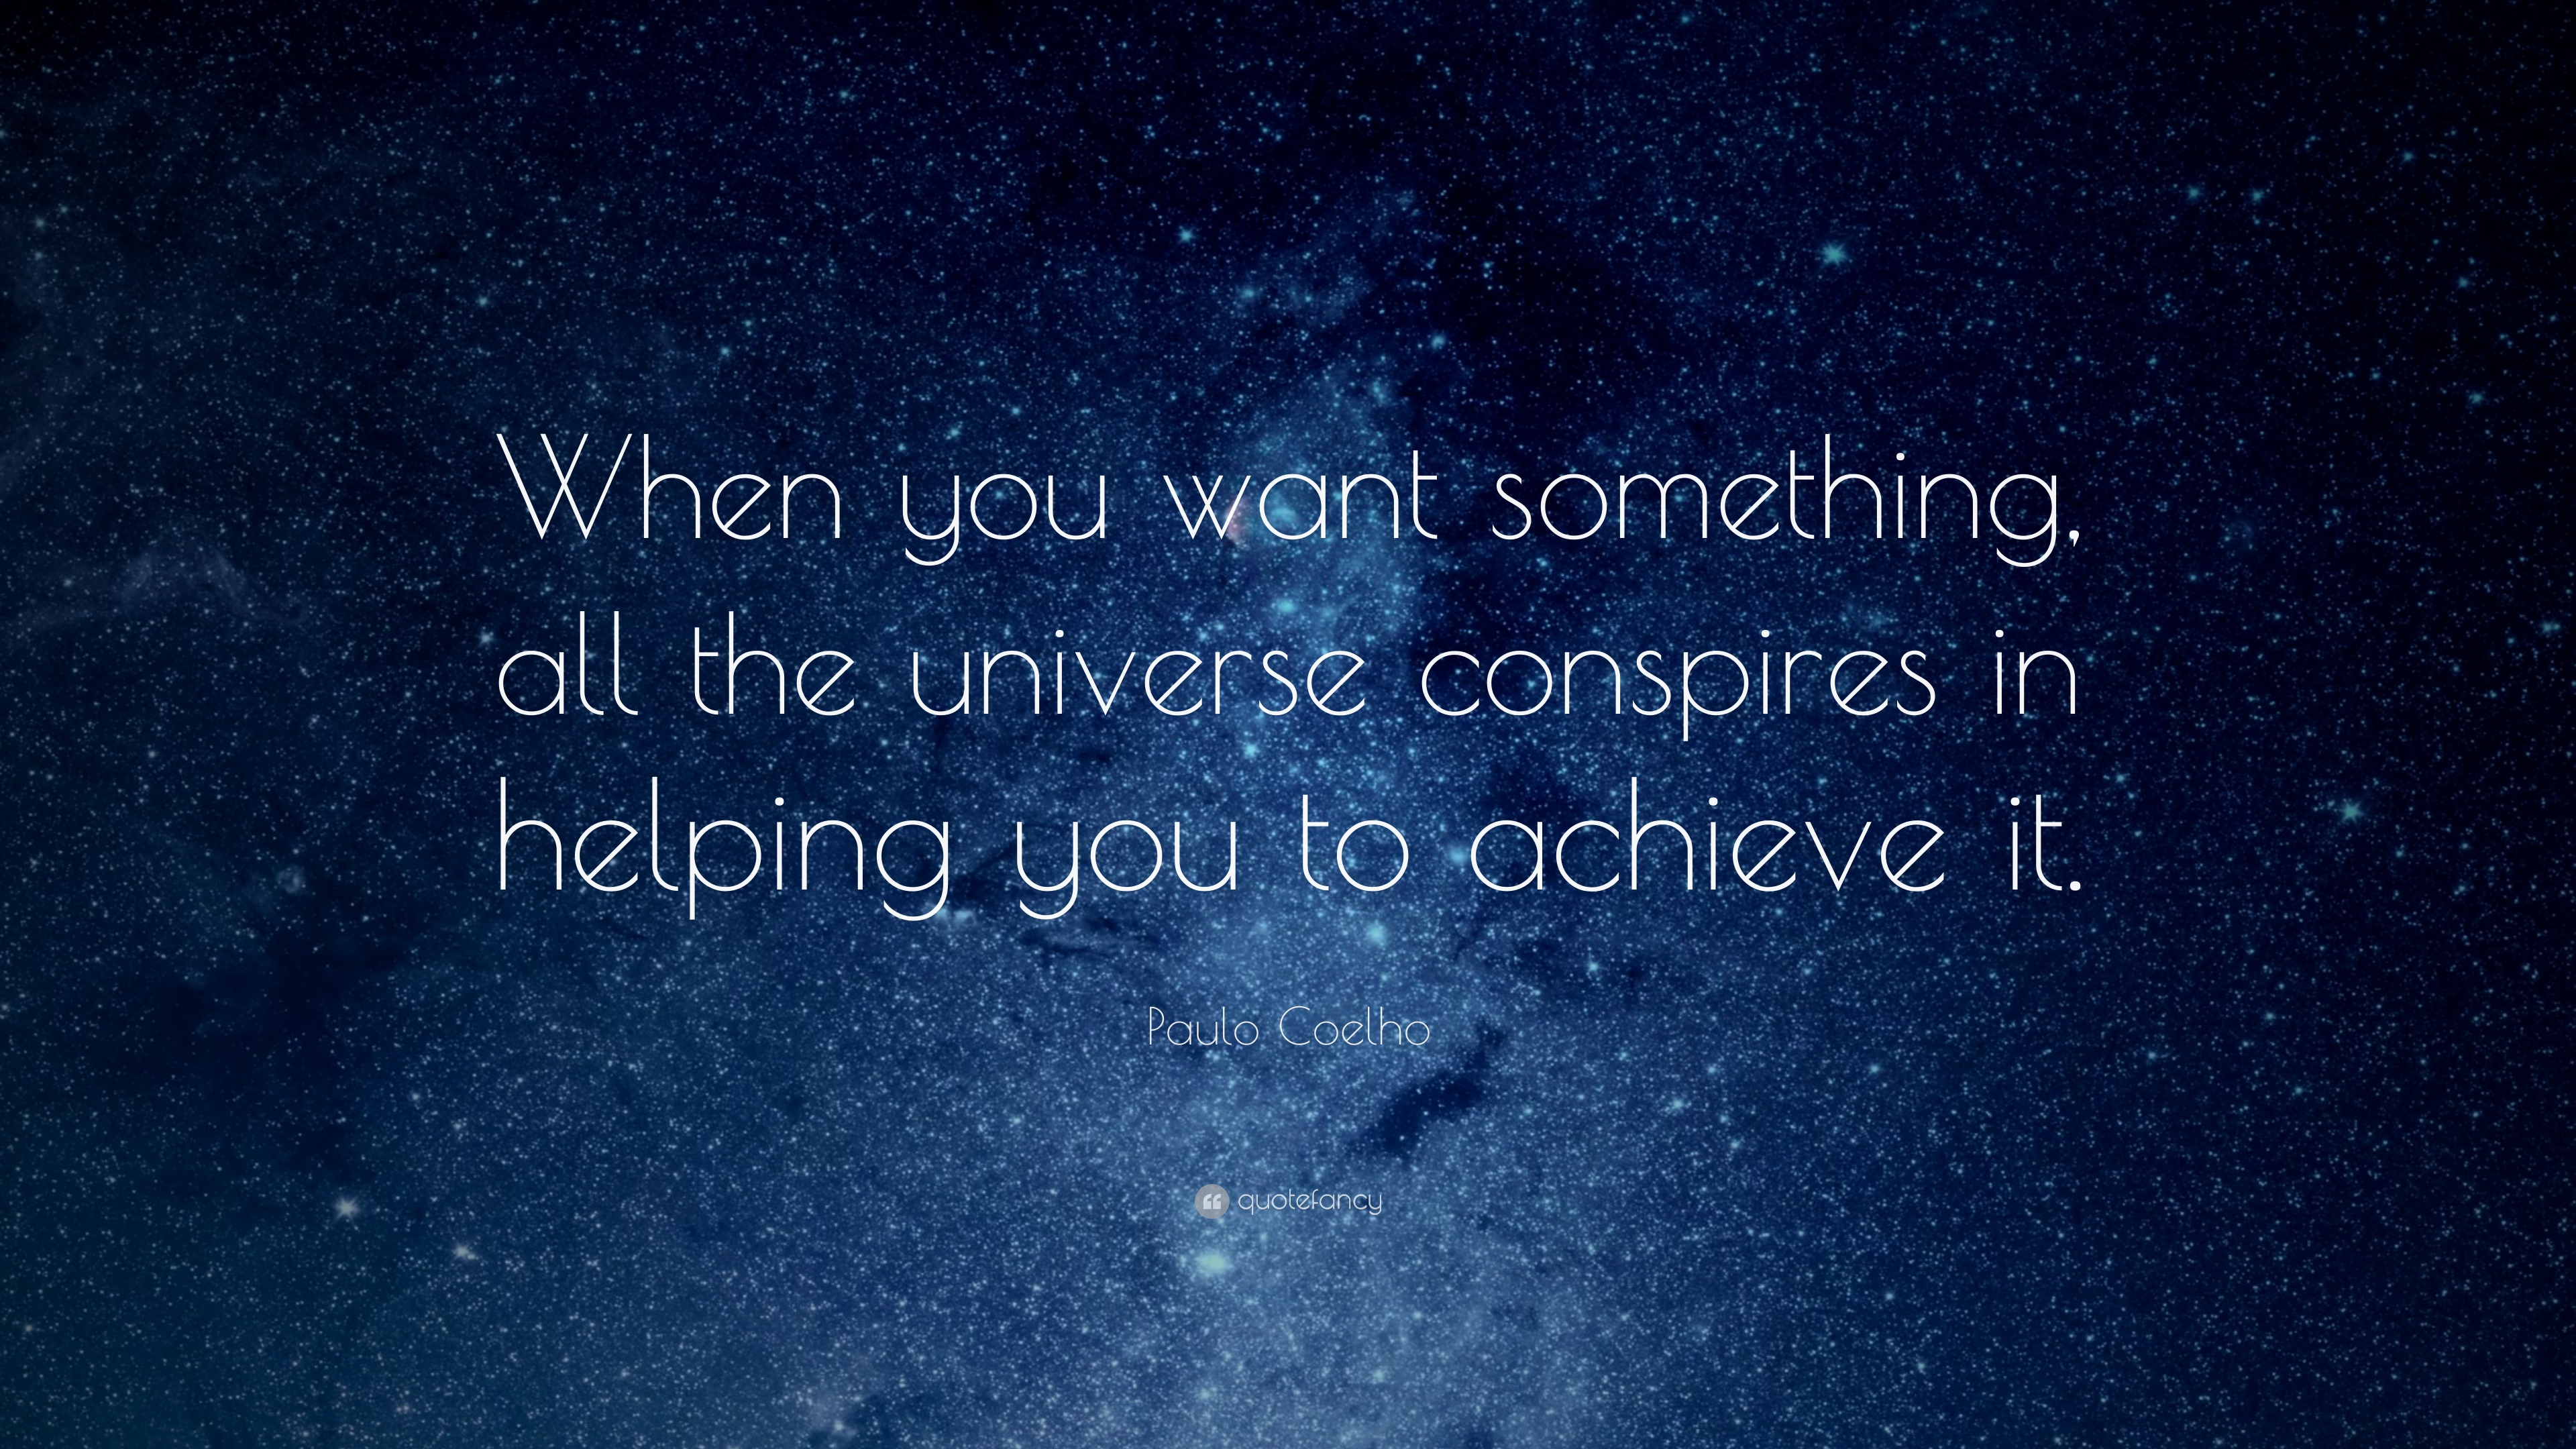 paulo coelho quote when you want something all the